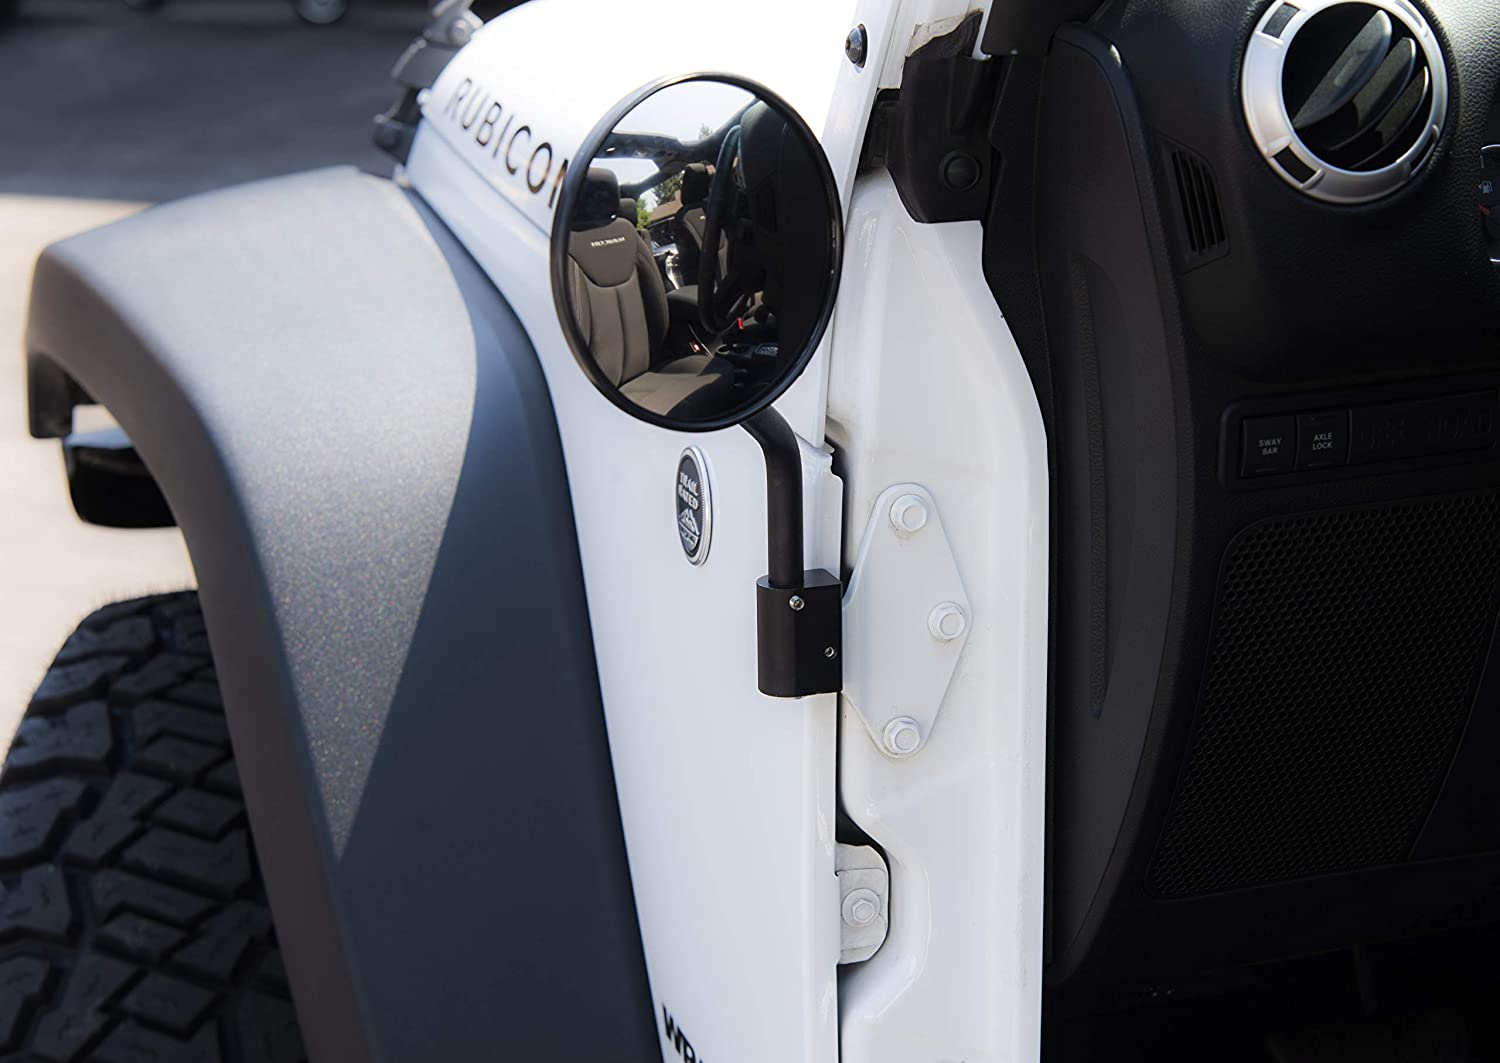 Mirror 1 Hinge Mount for 2007-2018 JK Jeeps M1-700 right and left side aftermarket replacement mirror set and mounting hardware for all Sport, Sahara, and Rubicon